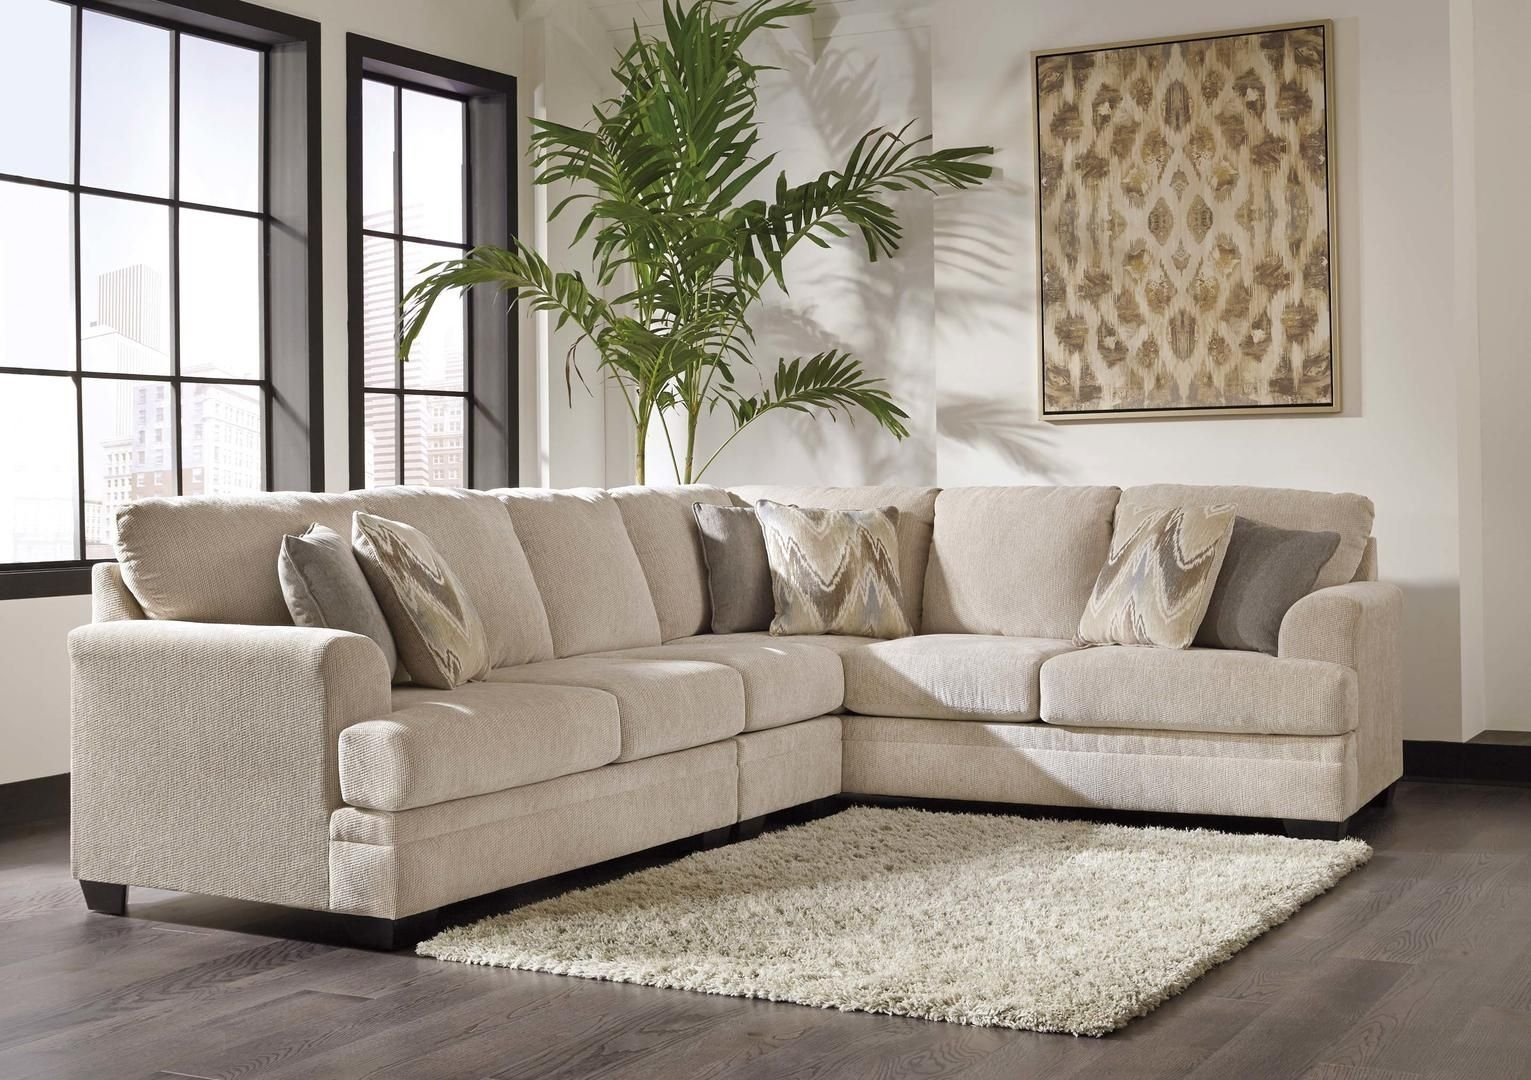 Ameer 81806 55 46 67 3 Piece Fabric Sectional Sofa With Left Arm With Regard To Malbry Point 3 Piece Sectionals With Laf Chaise (View 7 of 30)